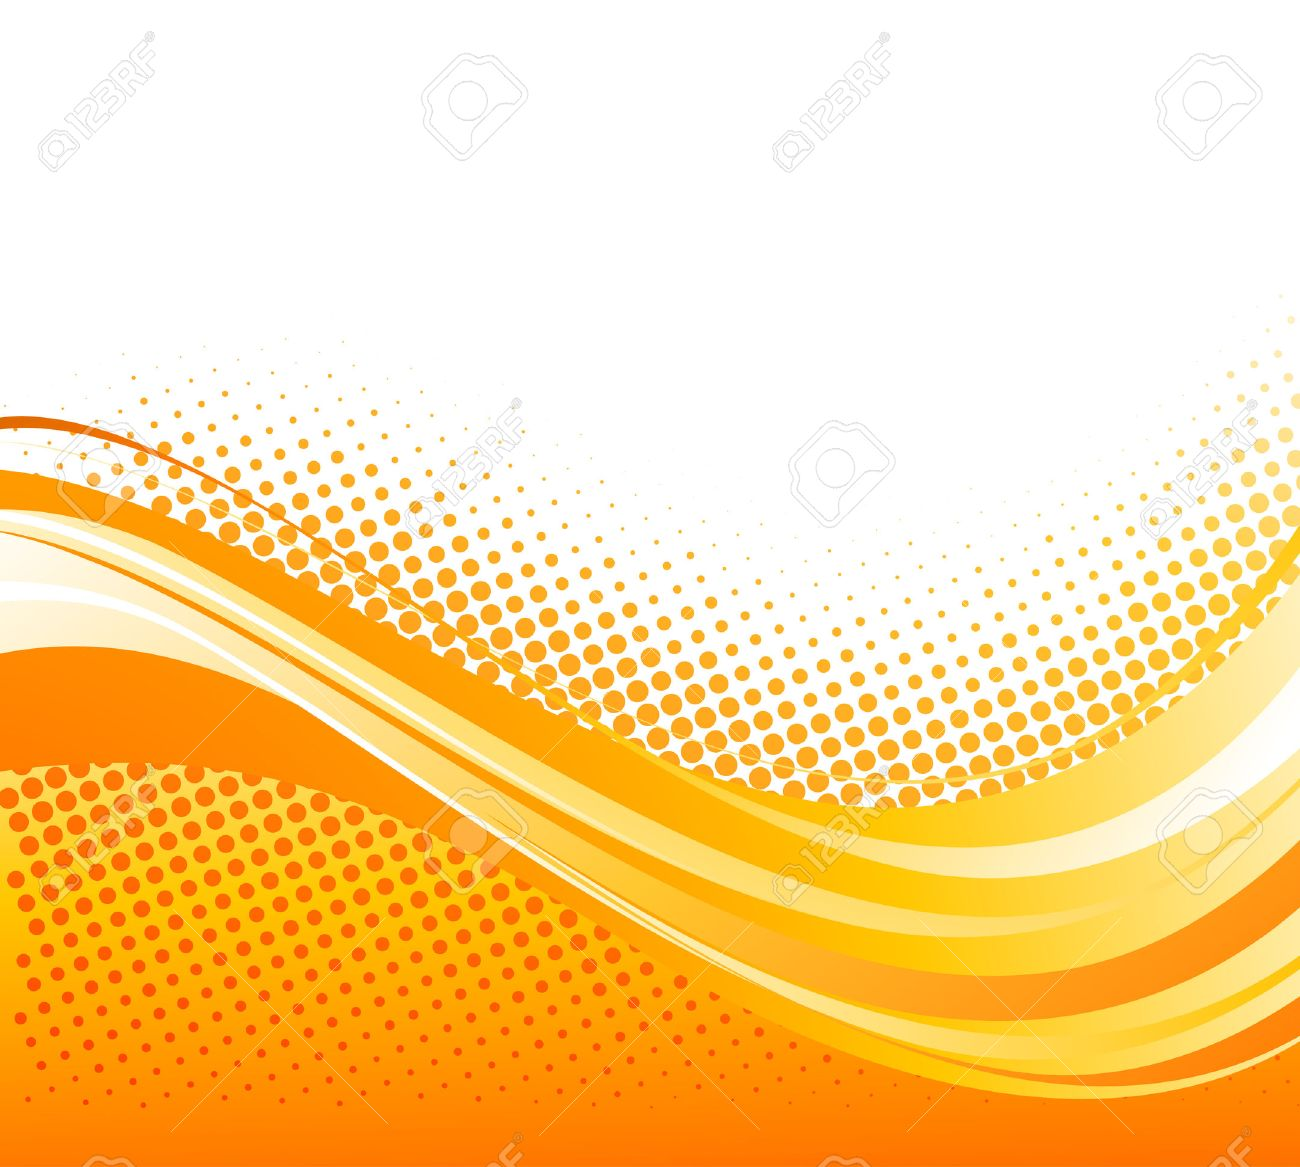 Abstract Orange Color Curved Lines Background With Halftone